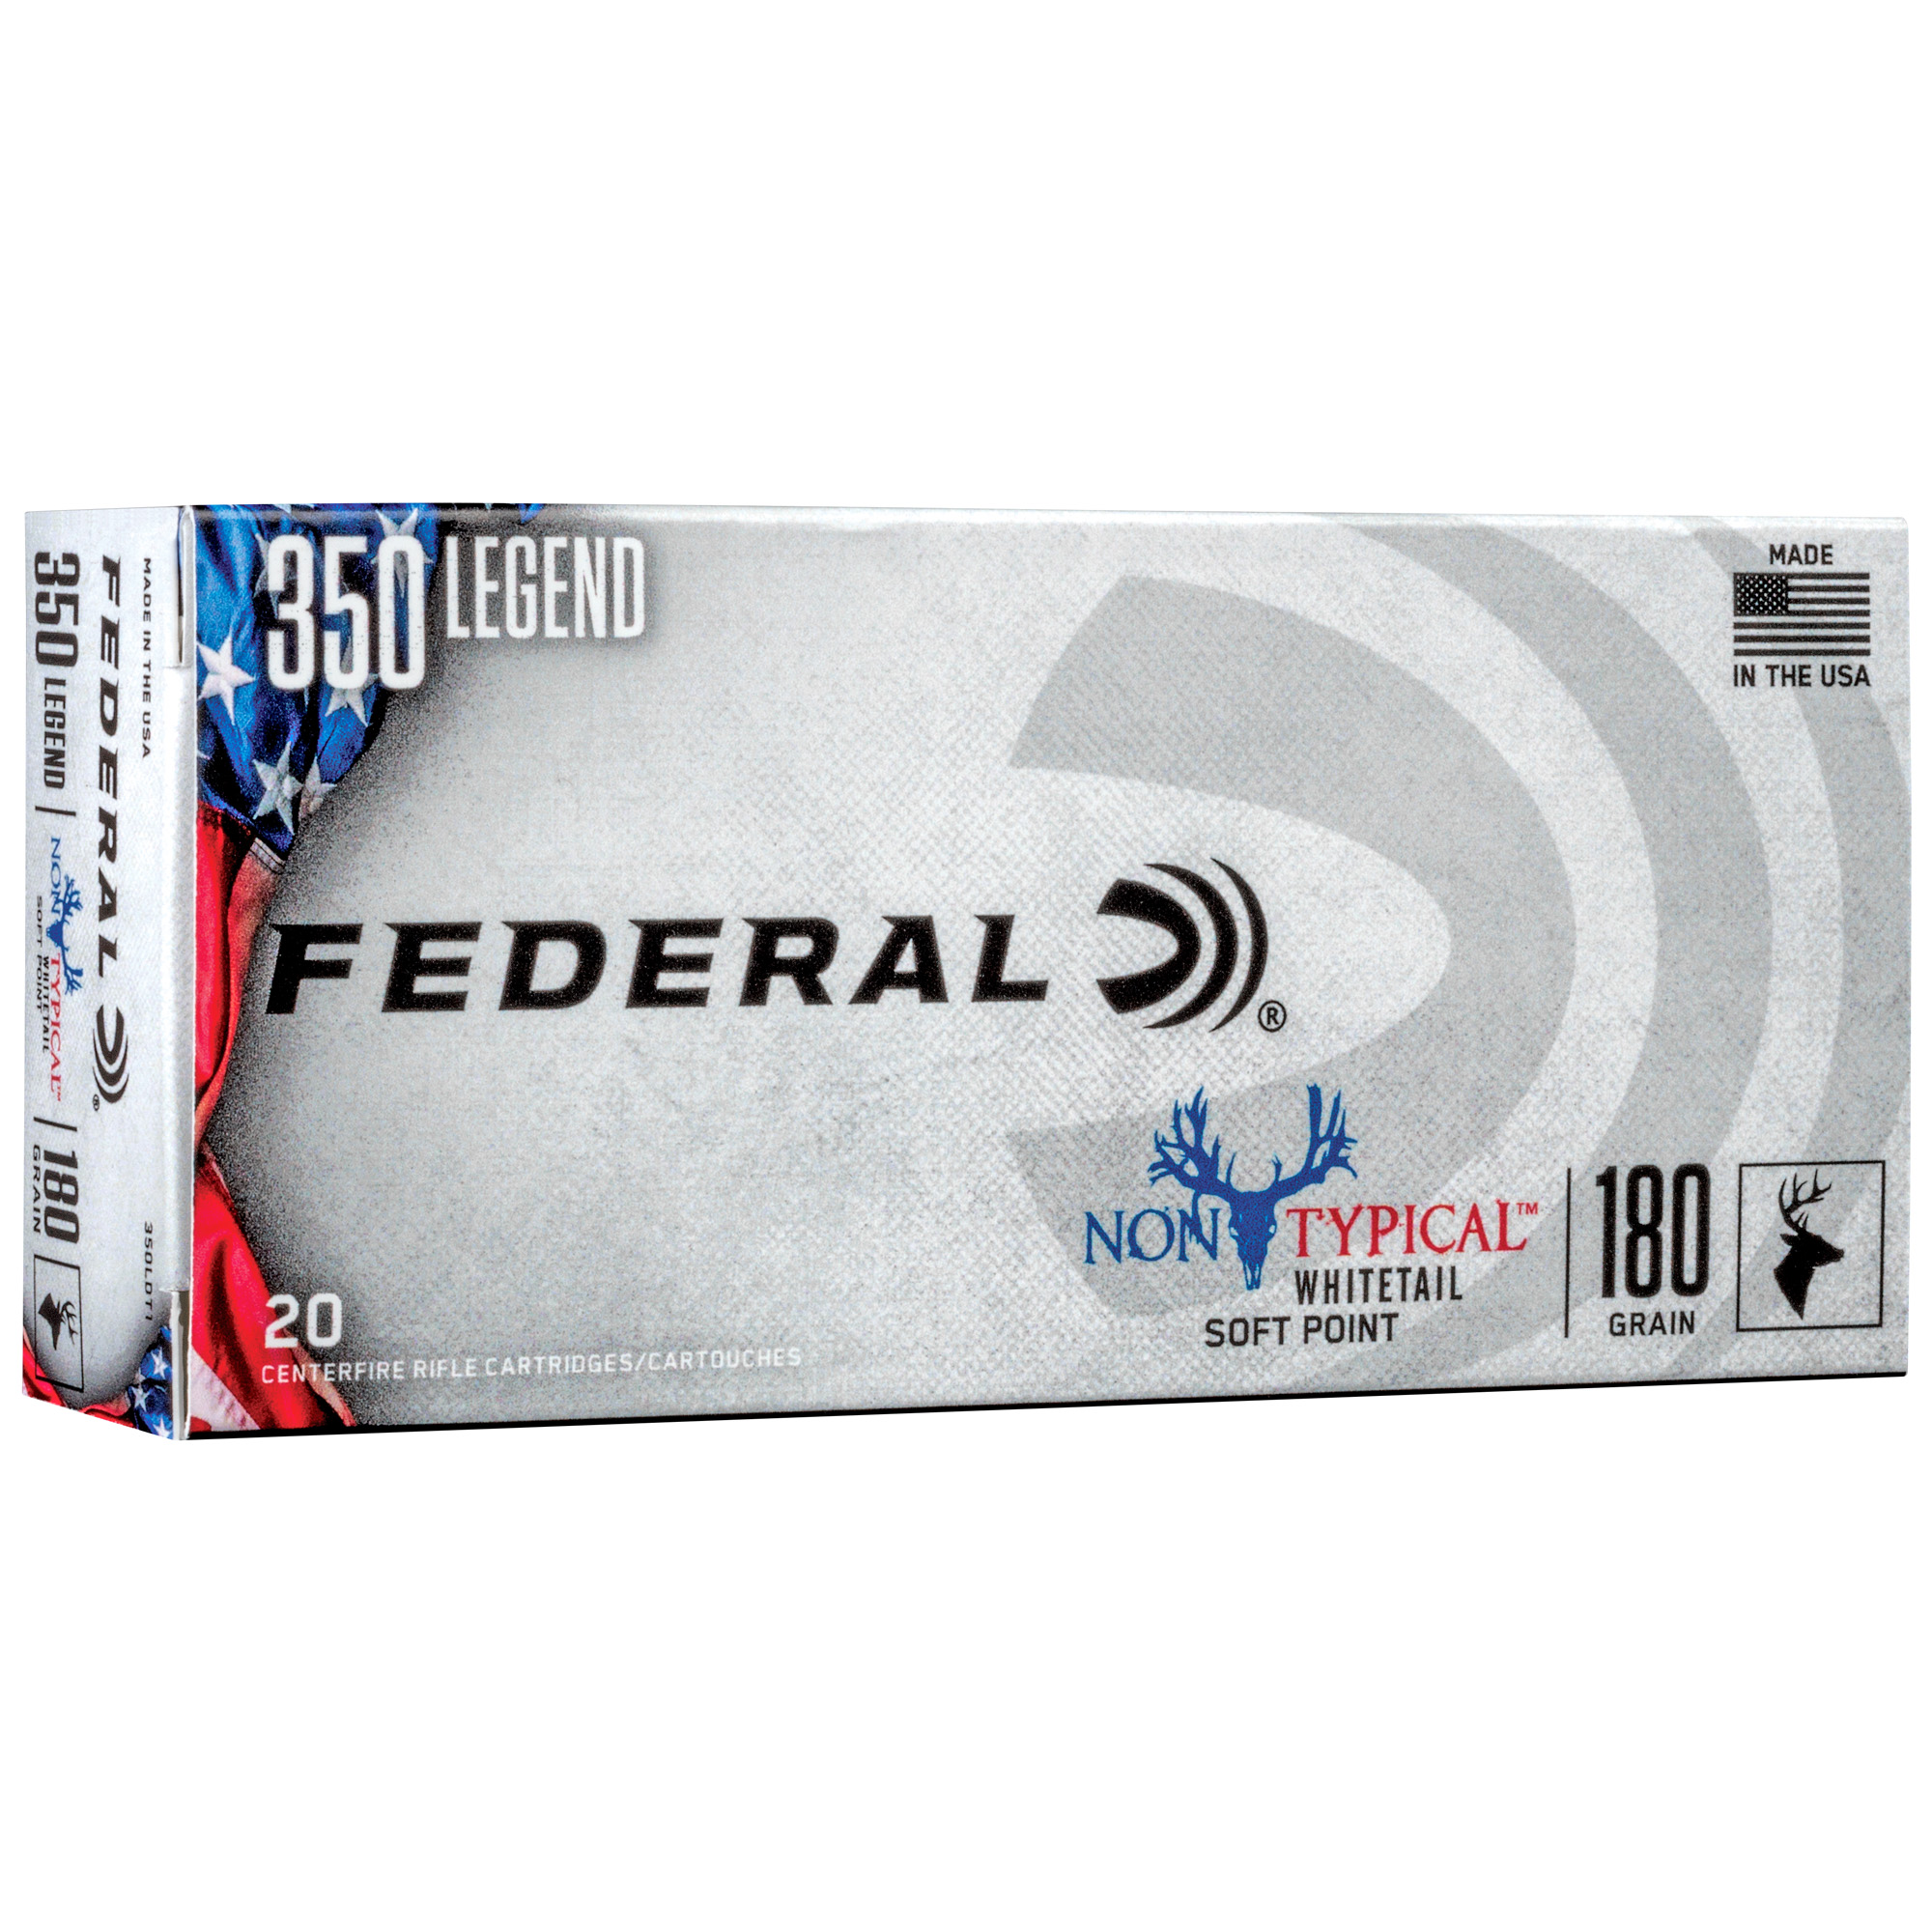 Fed Non Typical 350leg 180gr Sp